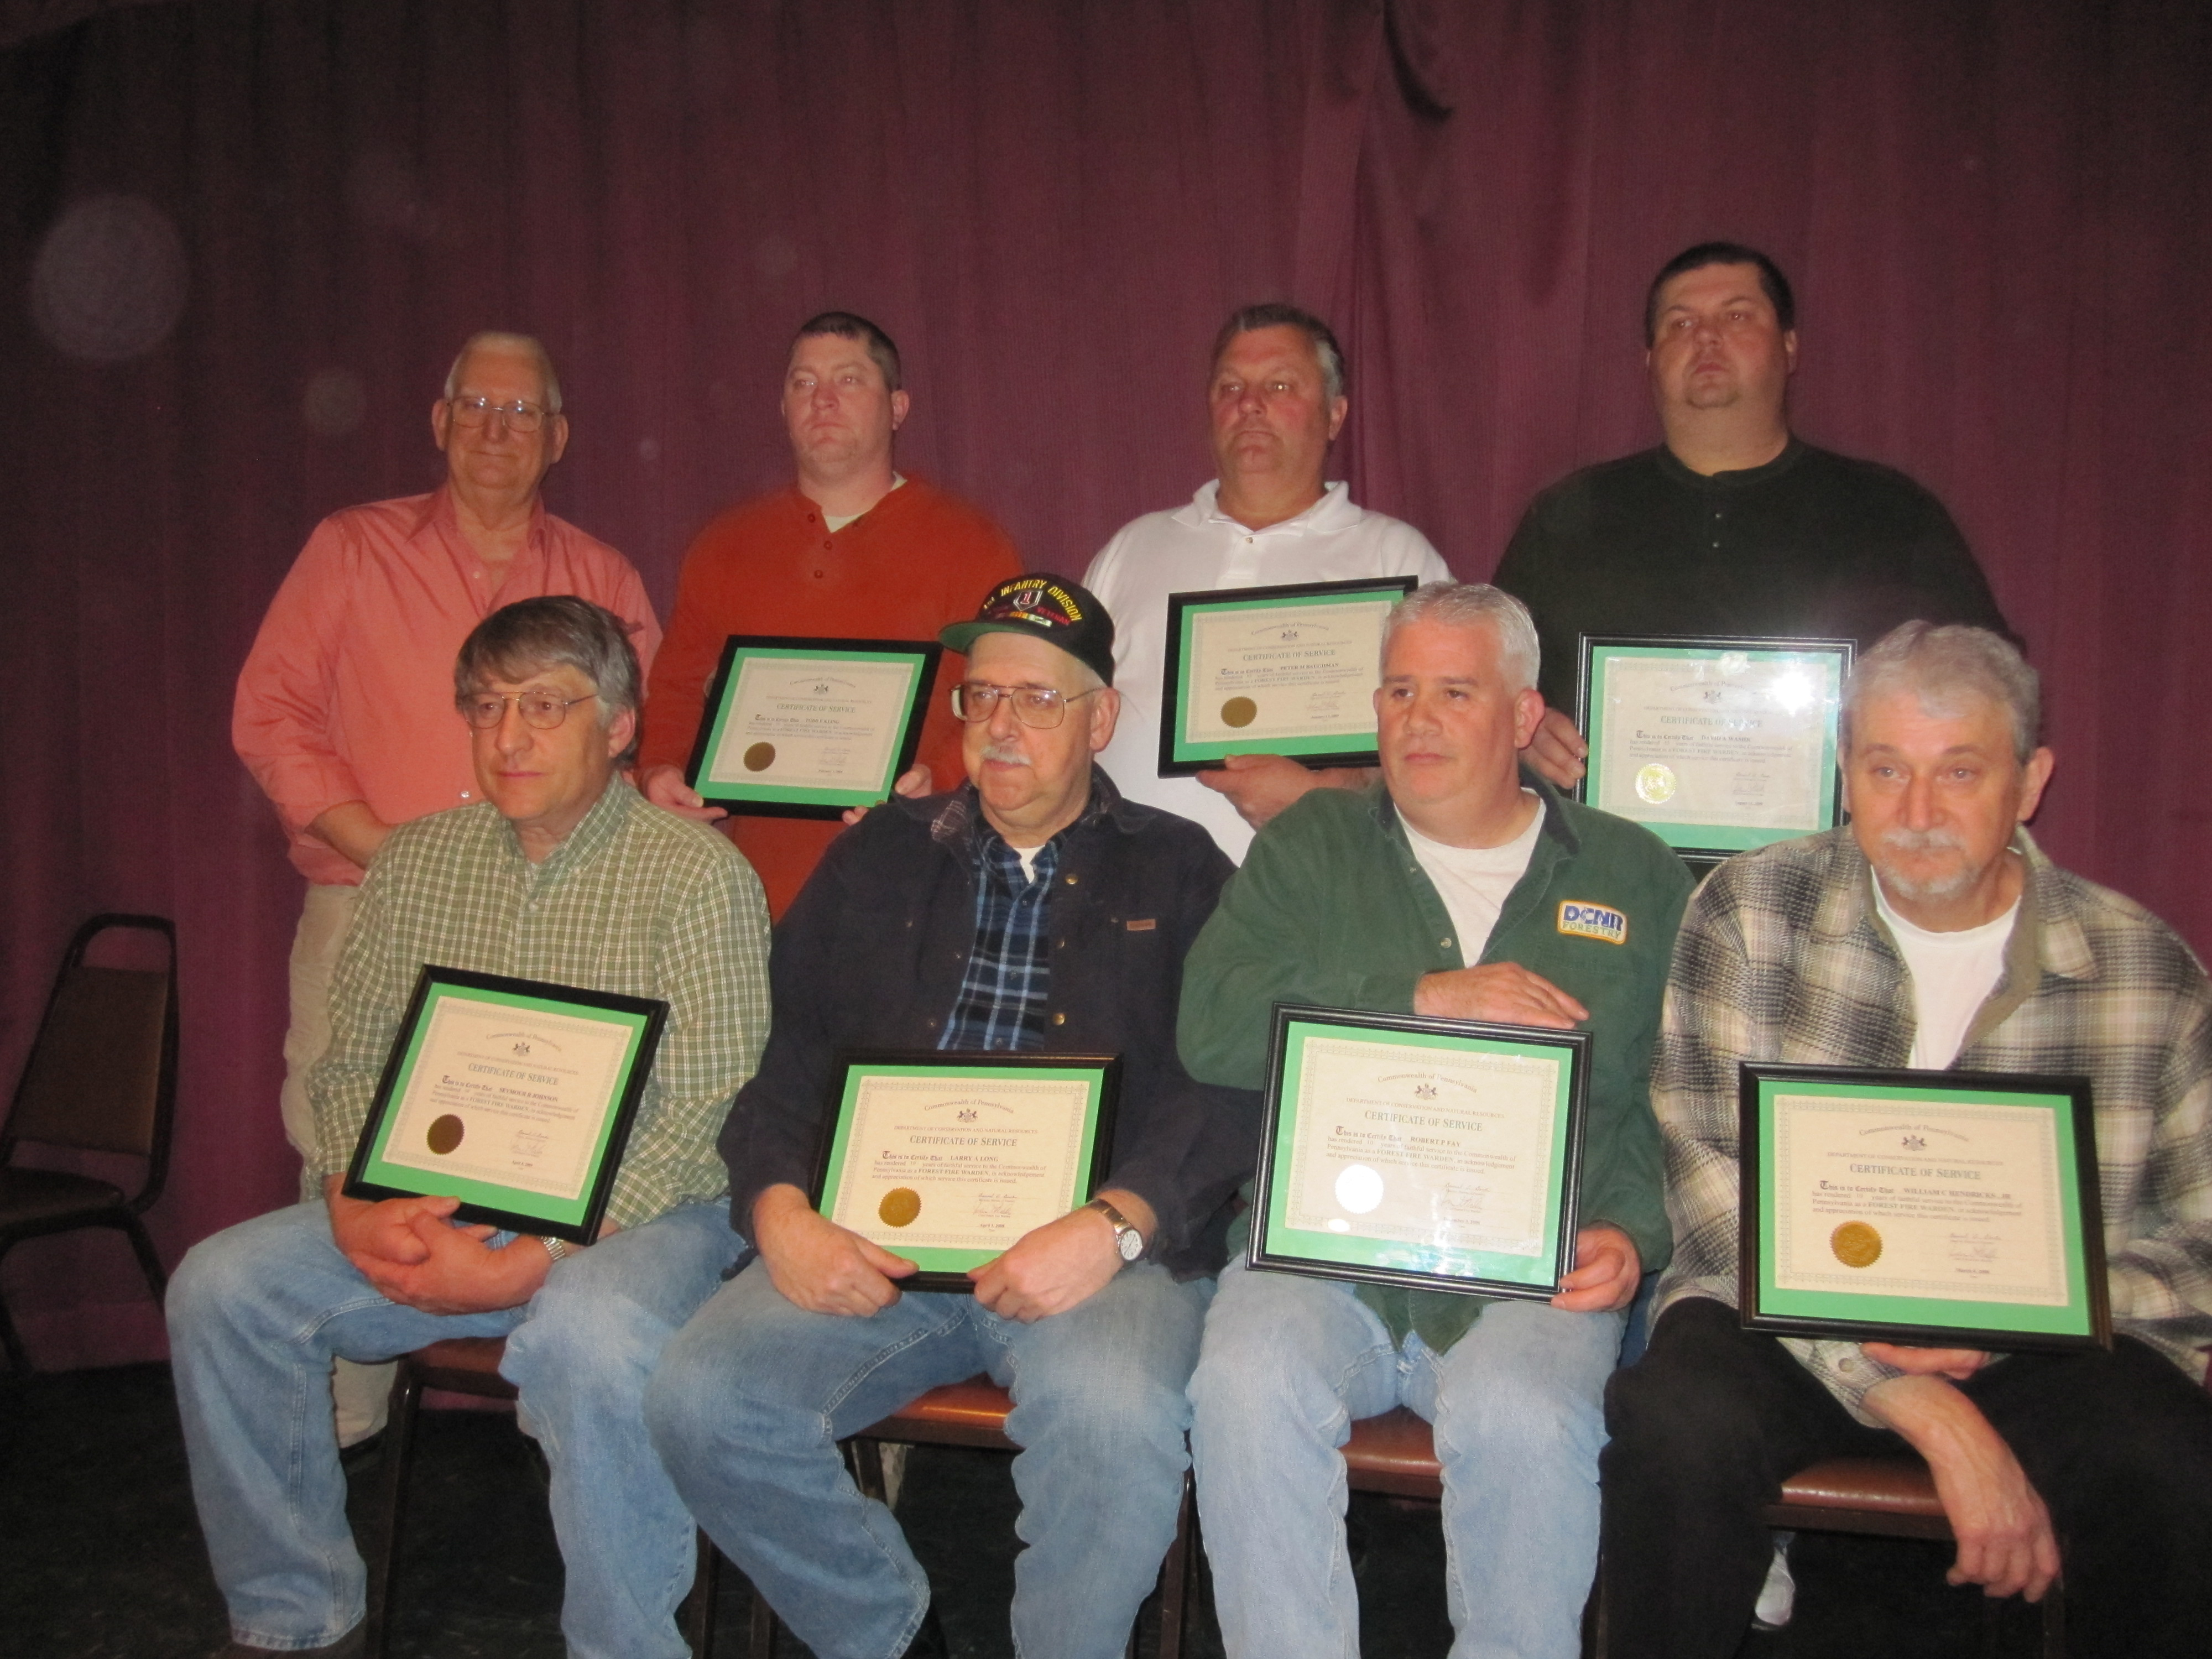 Moshannon State Forest Fire Wardens Meet (Photo by Greg Neeper).